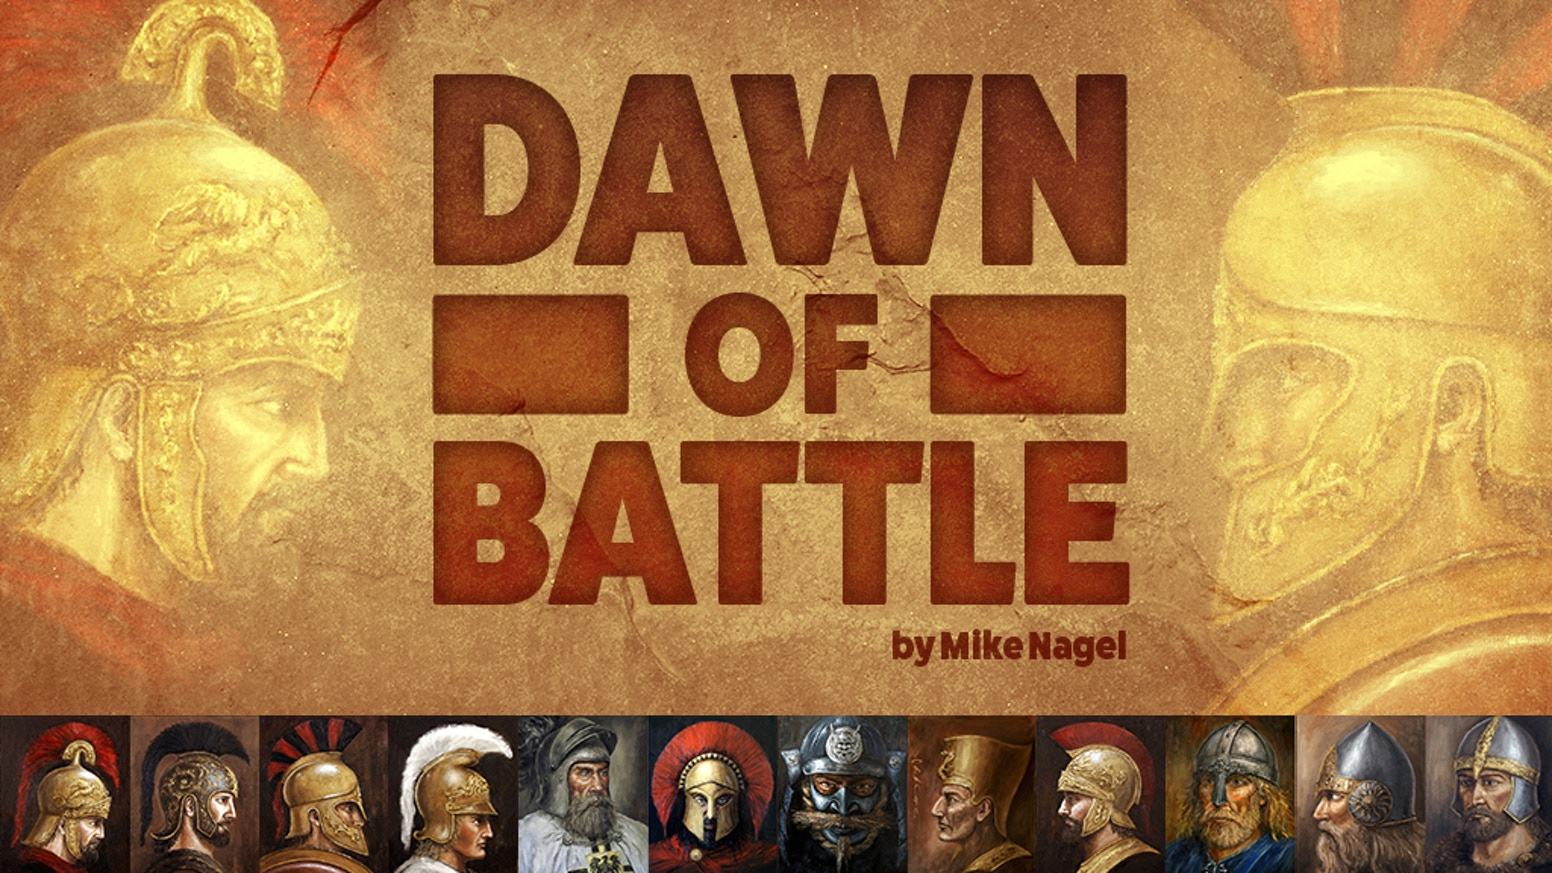 A 2 player game depicting battles from Ancient Egypt to early gunpowder.  Games can be played in under 2 hours. Designed by Mike Nagel.